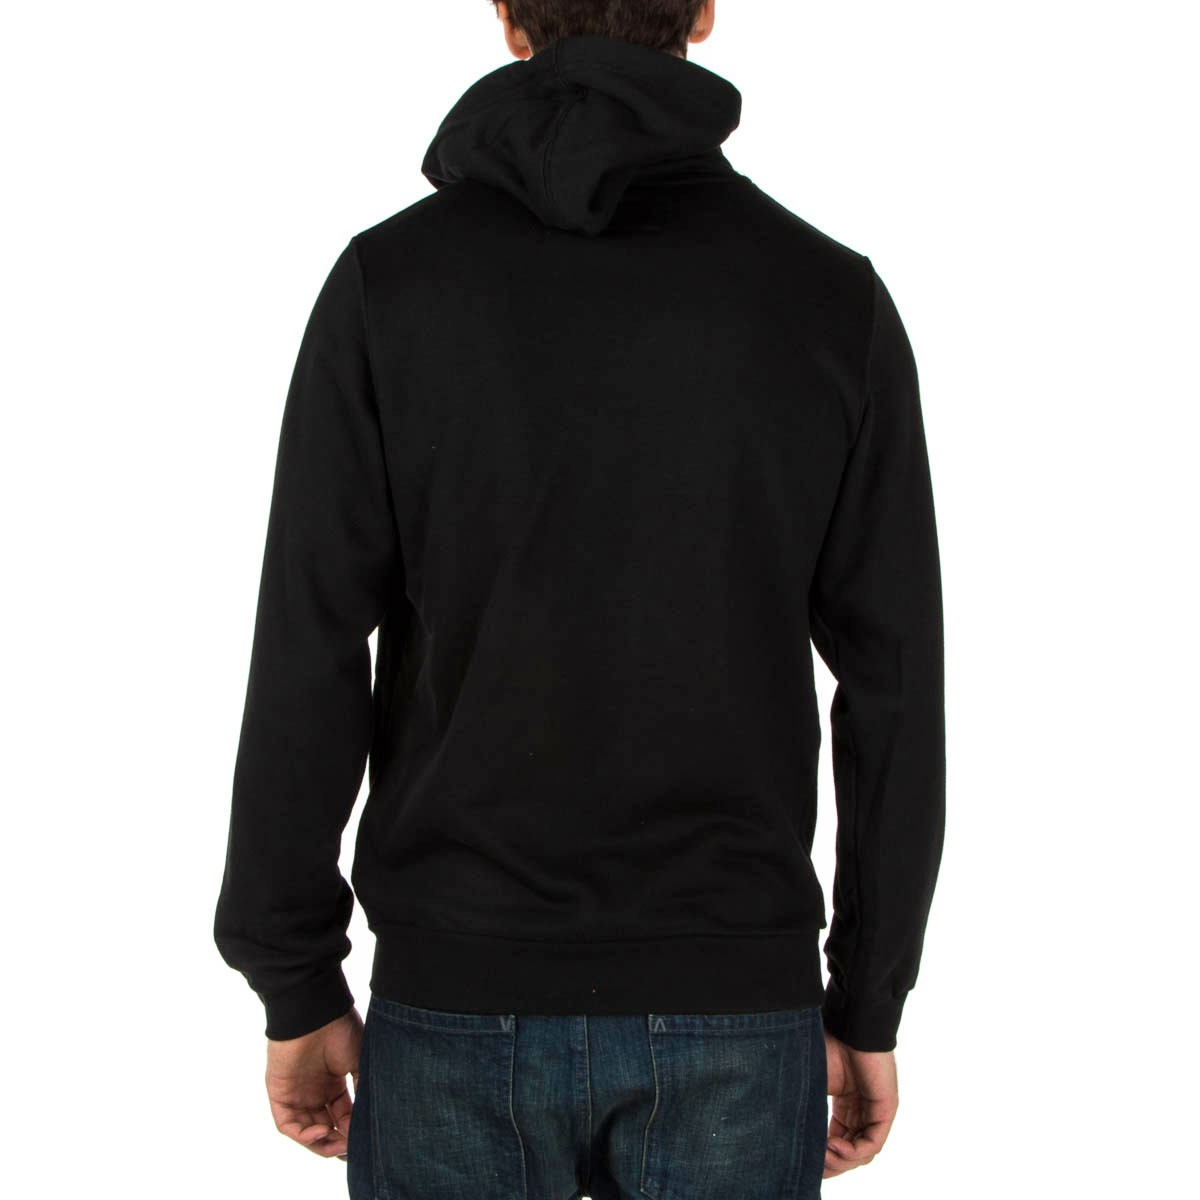 Emerica hoodies